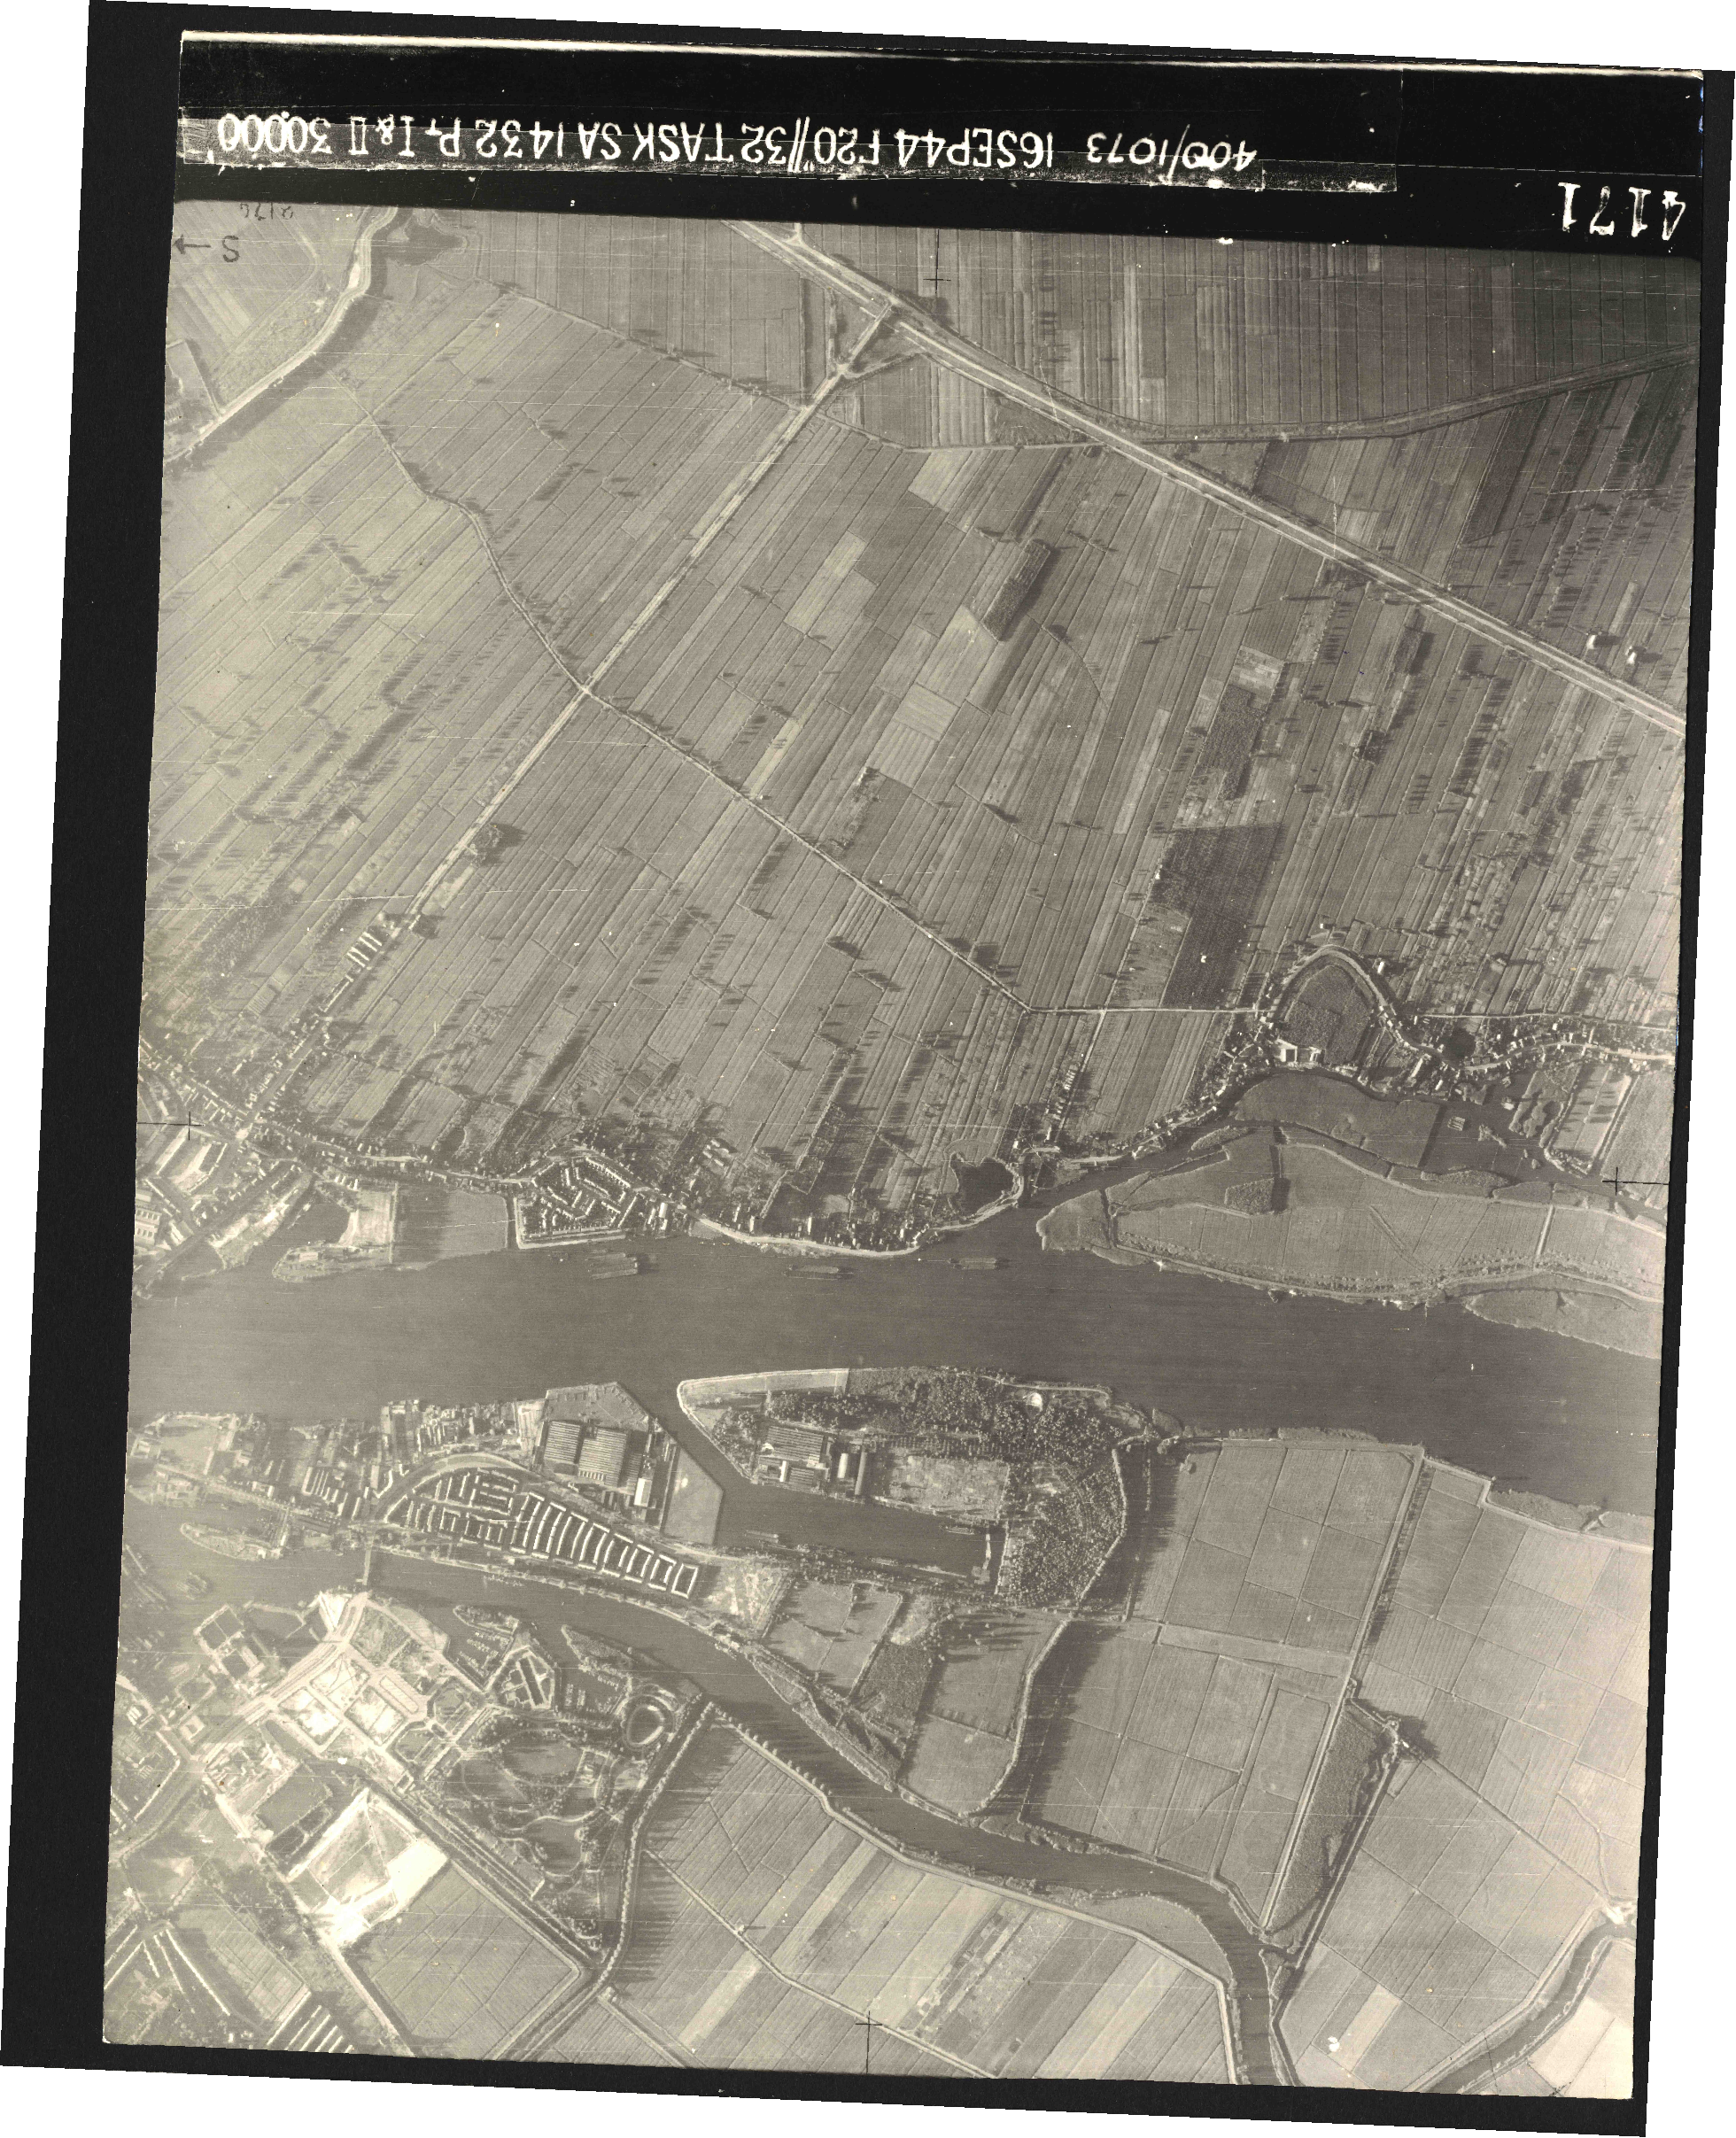 Collection RAF aerial photos 1940-1945 - flight 013, run 01, photo 4171